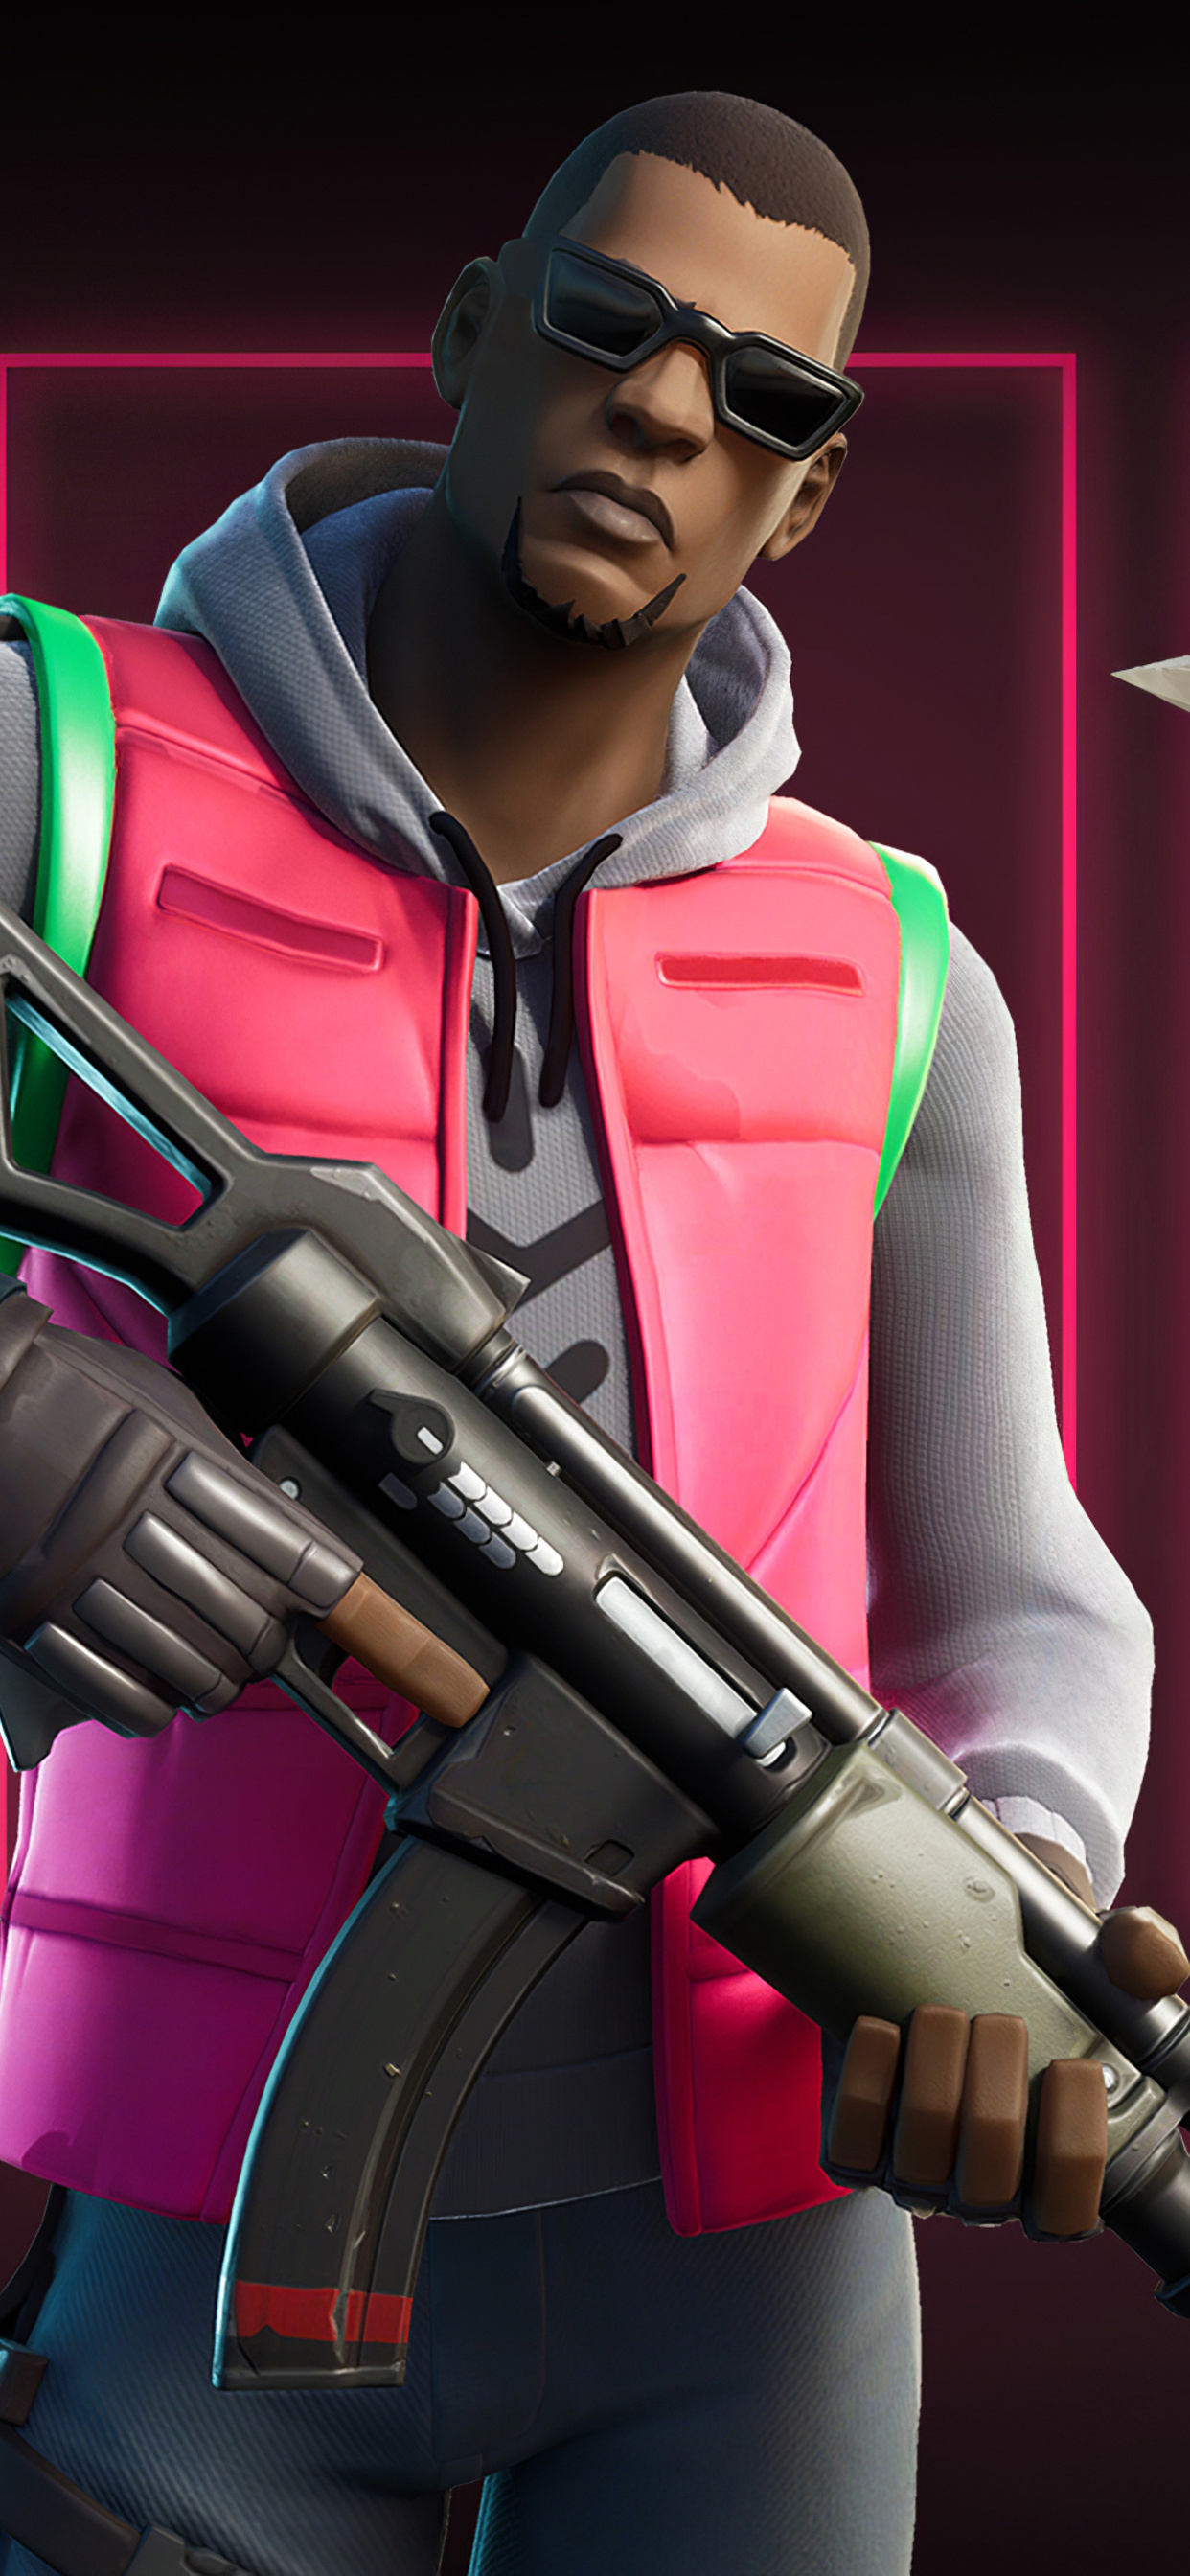 1242x2688 Fortnite Skin 4k Iphone Xs Max Hd 4k Wallpapers Images Backgrounds Photos And Pictures